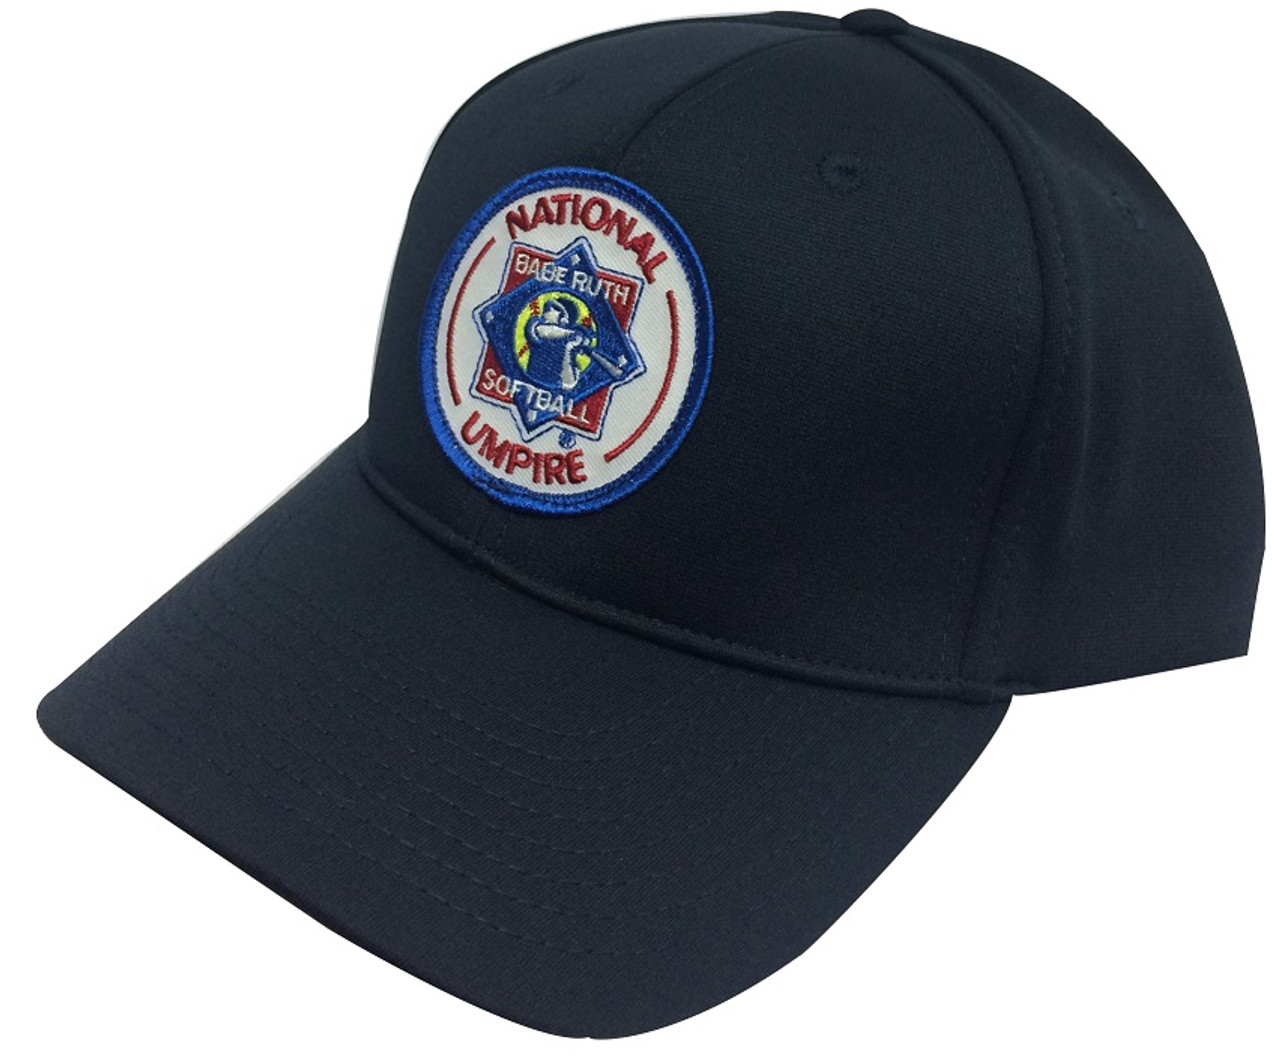 Babe Ruth Softball Umpire Caps